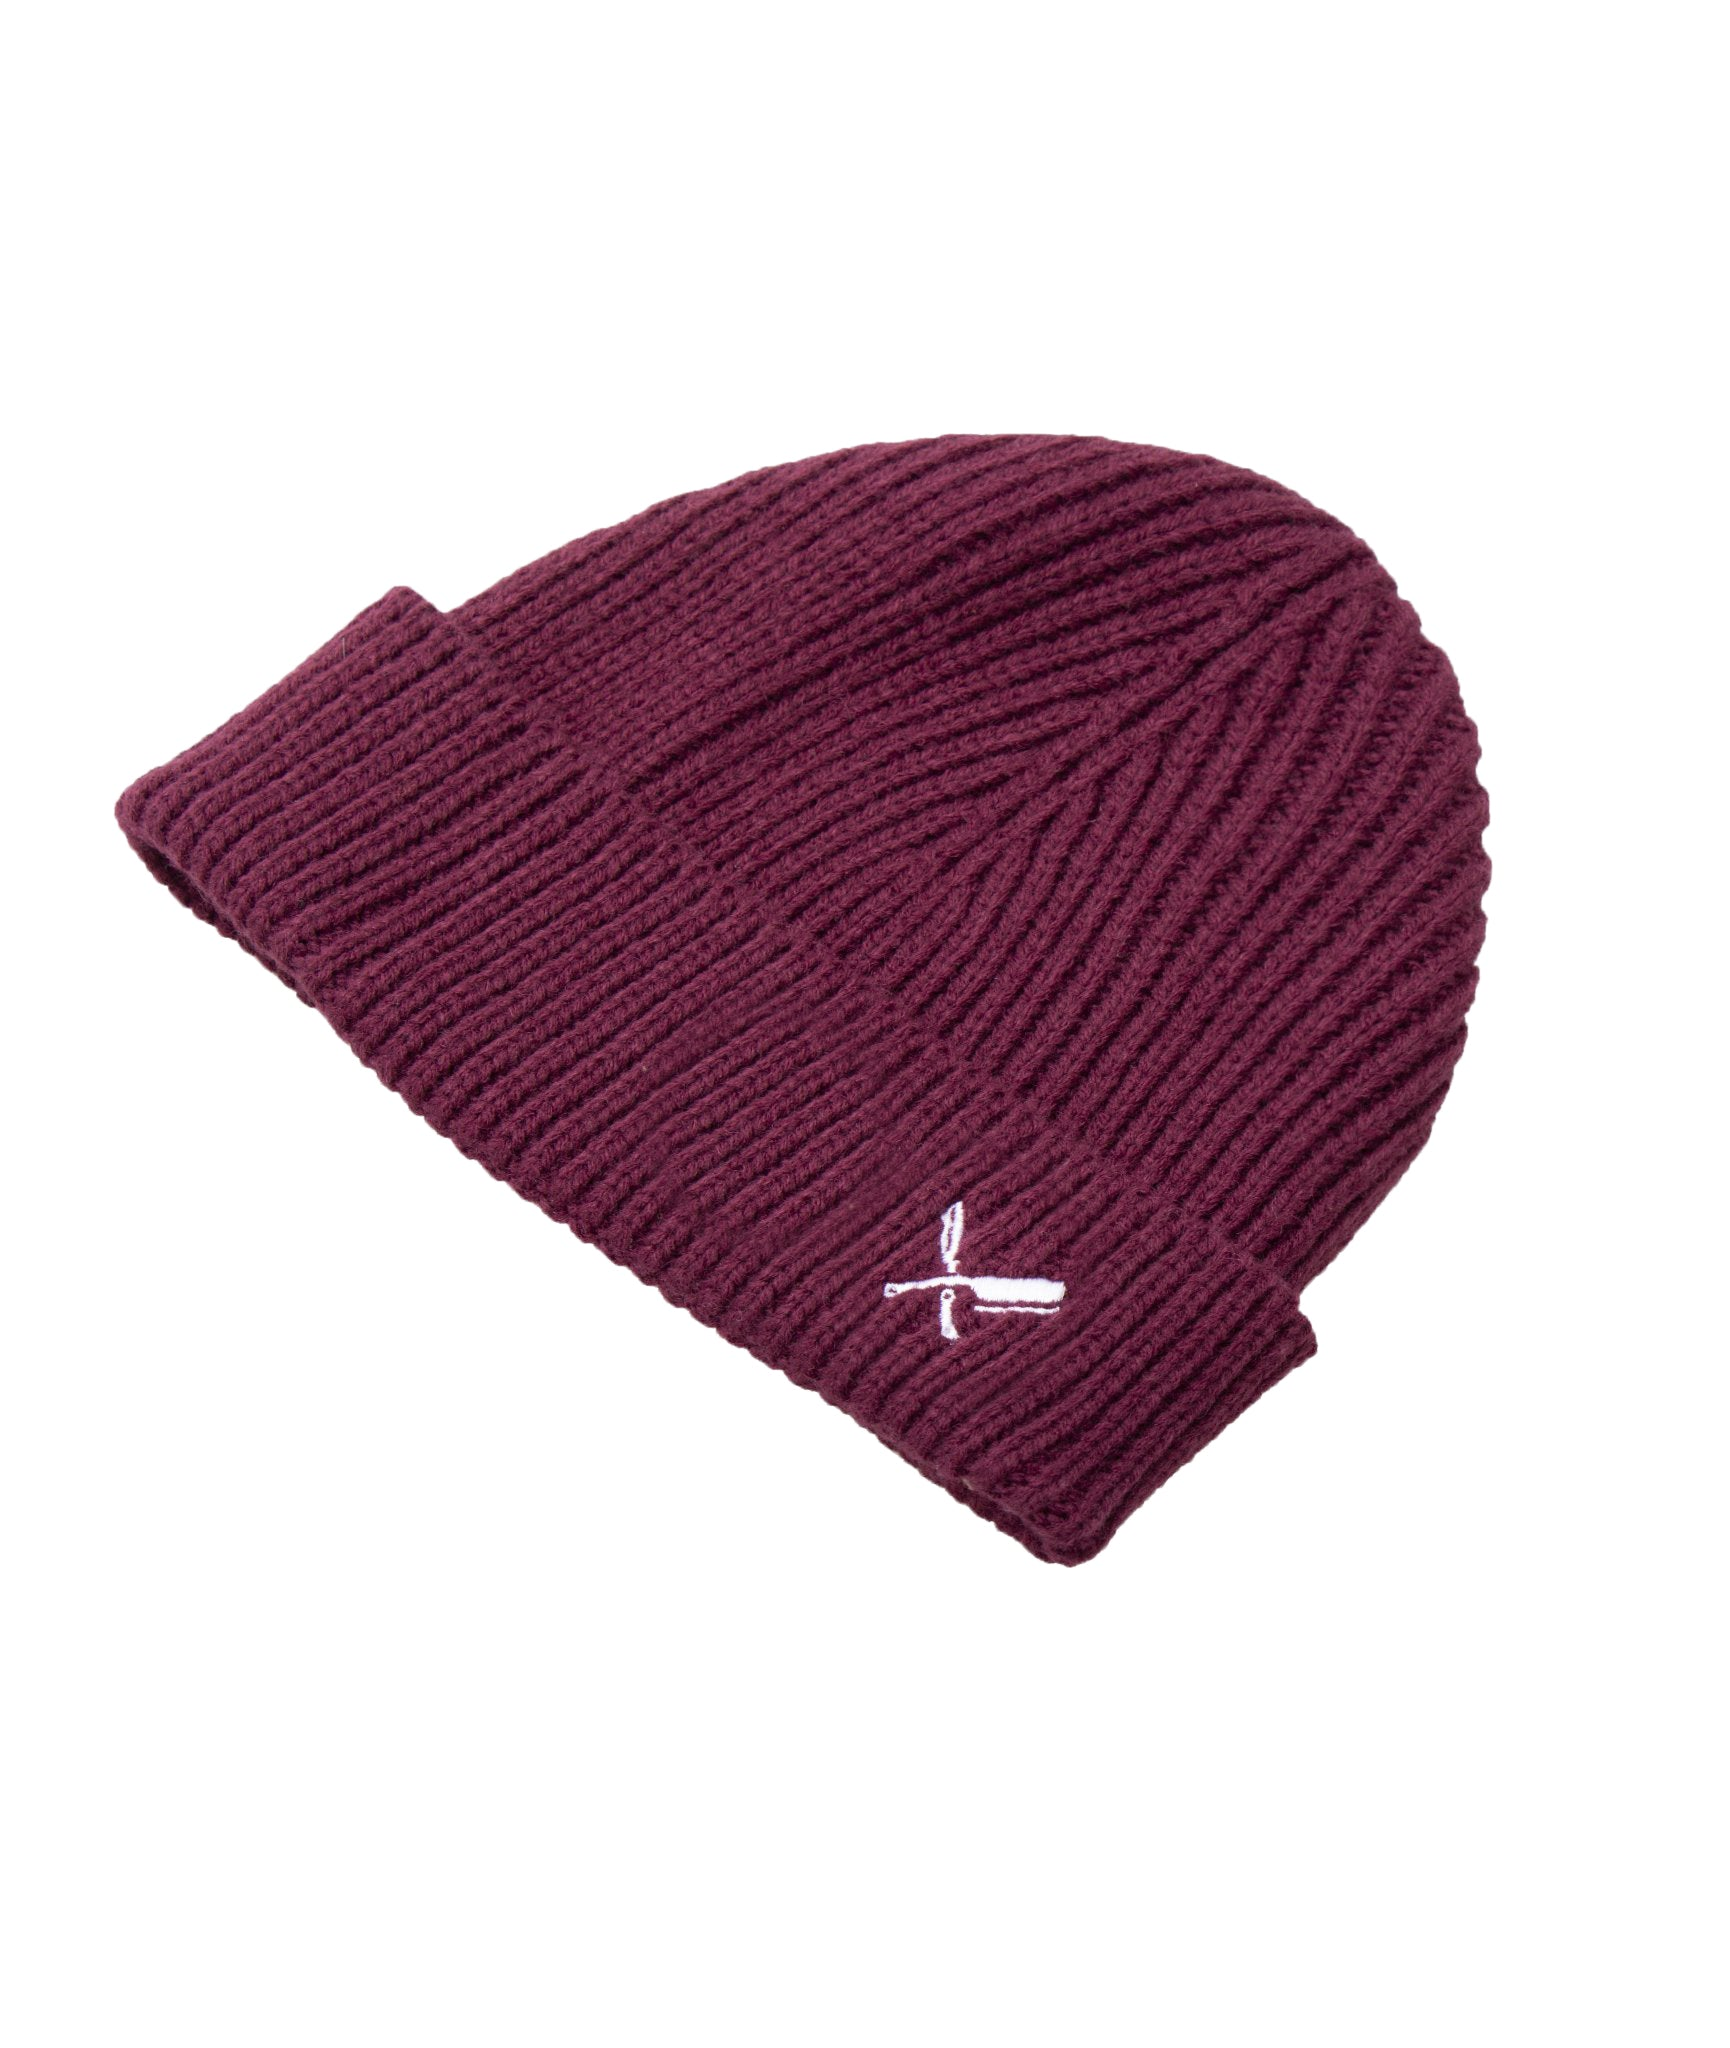 distorted people - Classic Fisherman Beanie